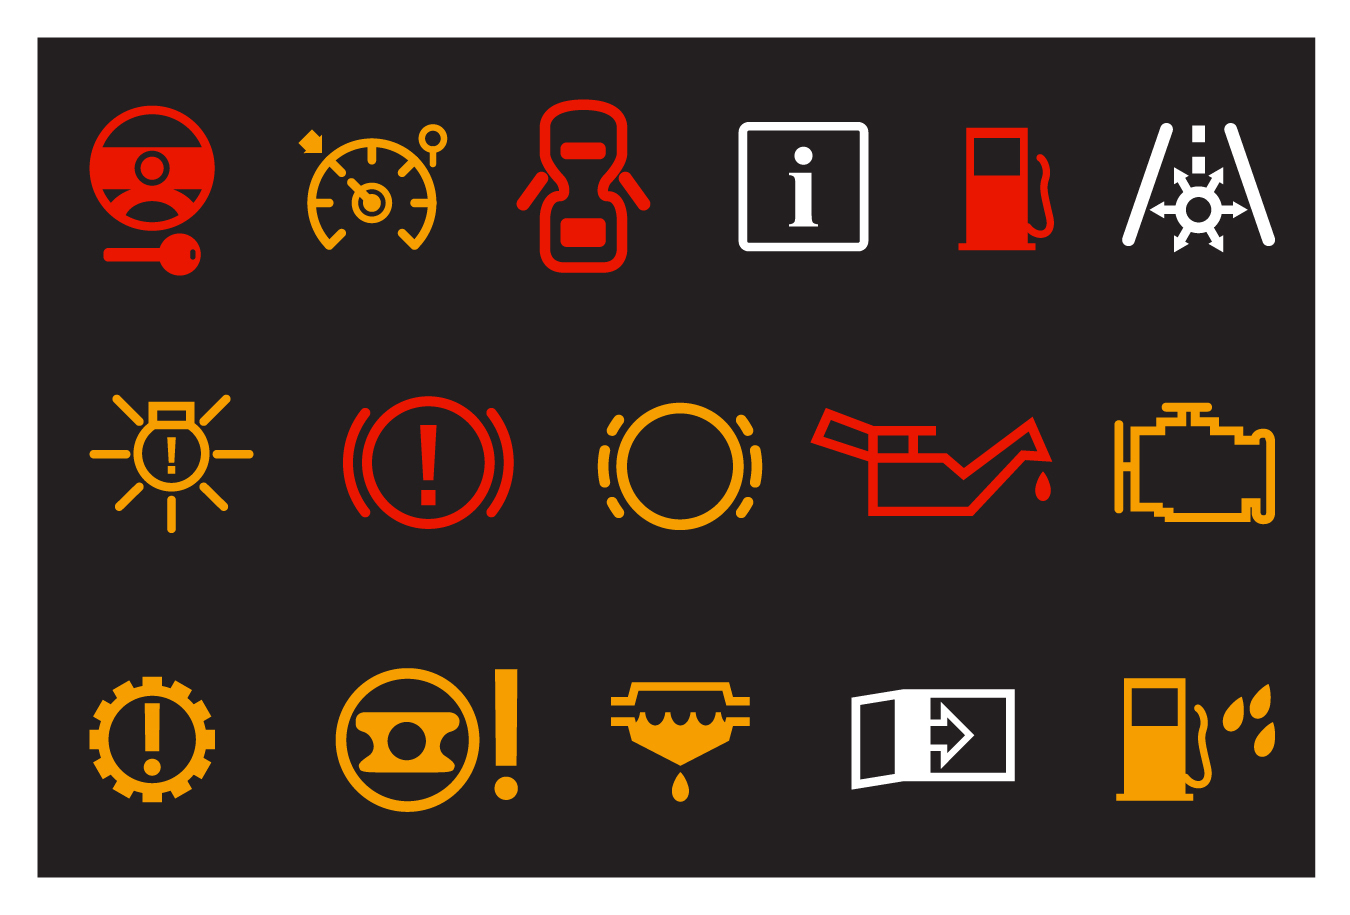 Car light symbols